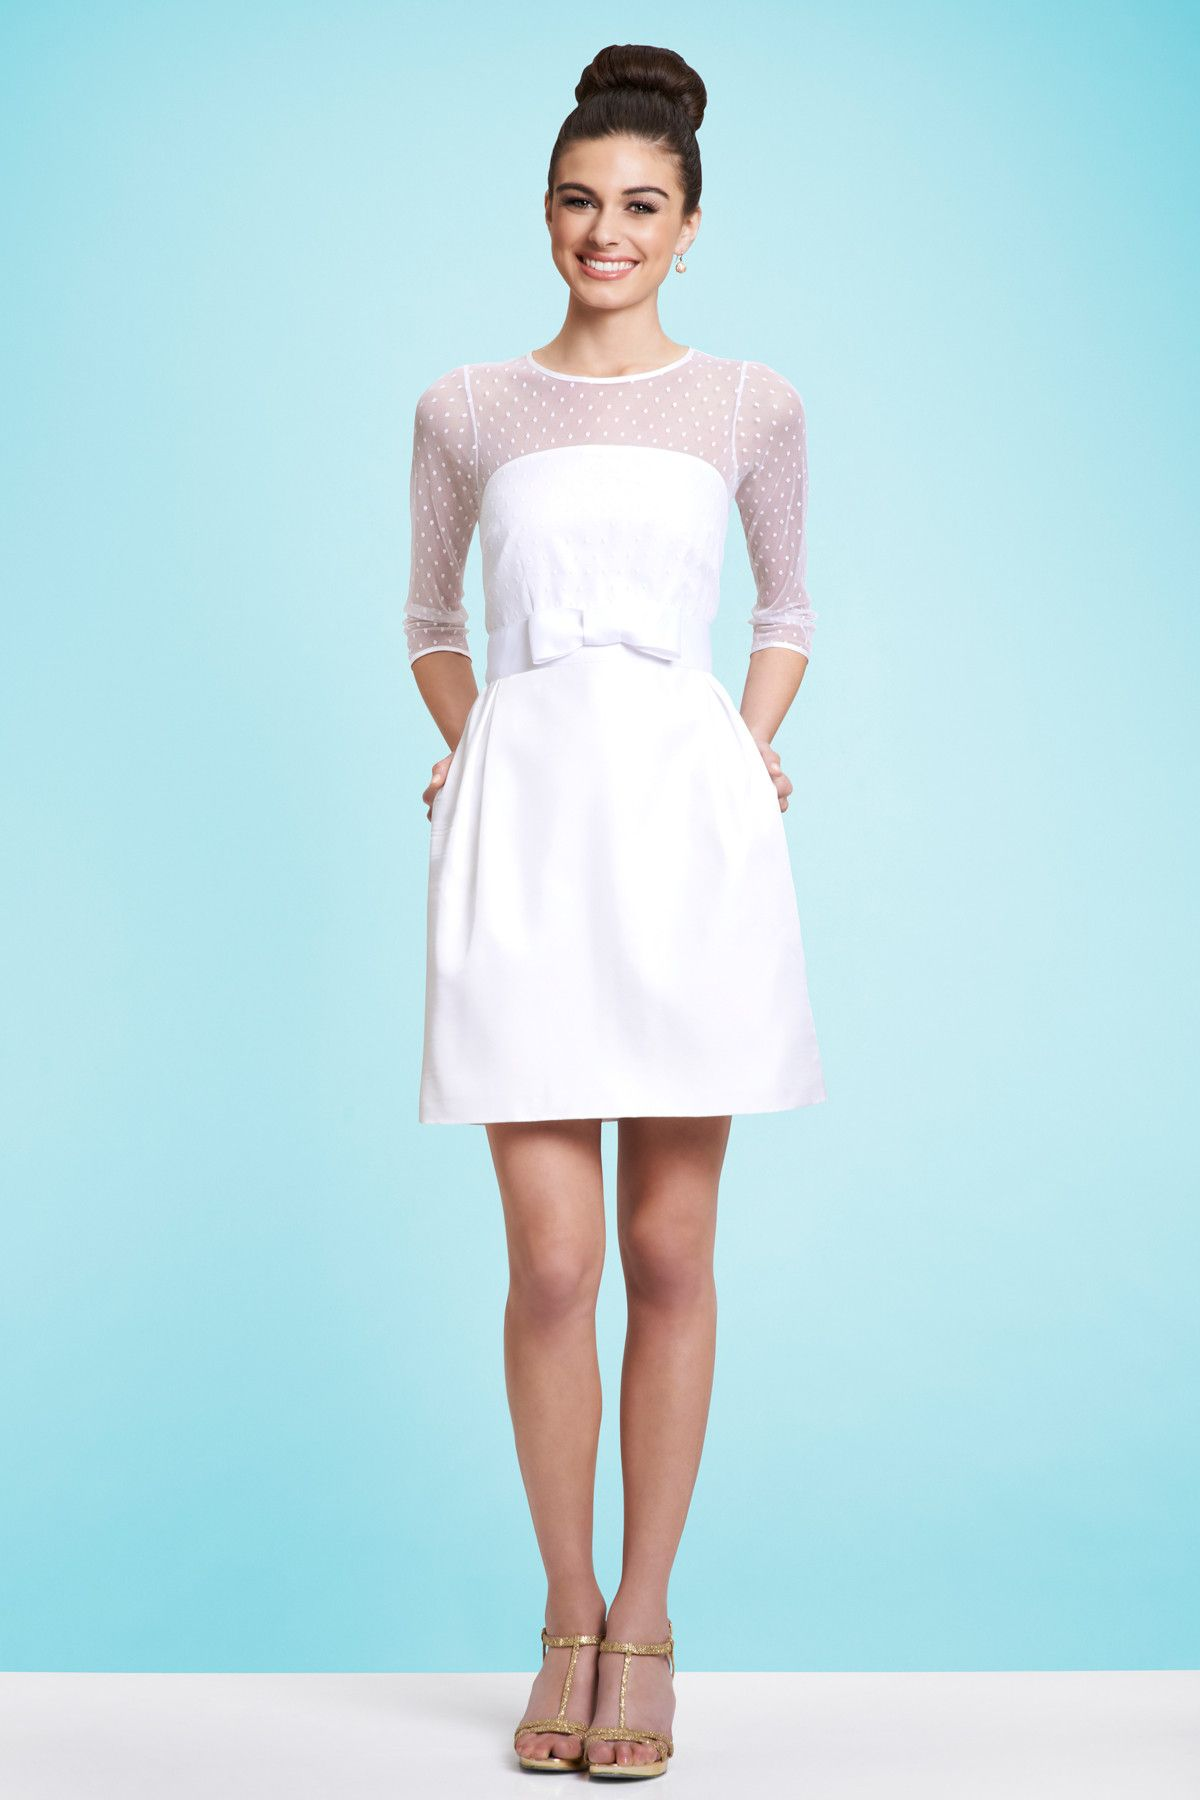 Weuve just added the kirribilla rosanna dress to our i do